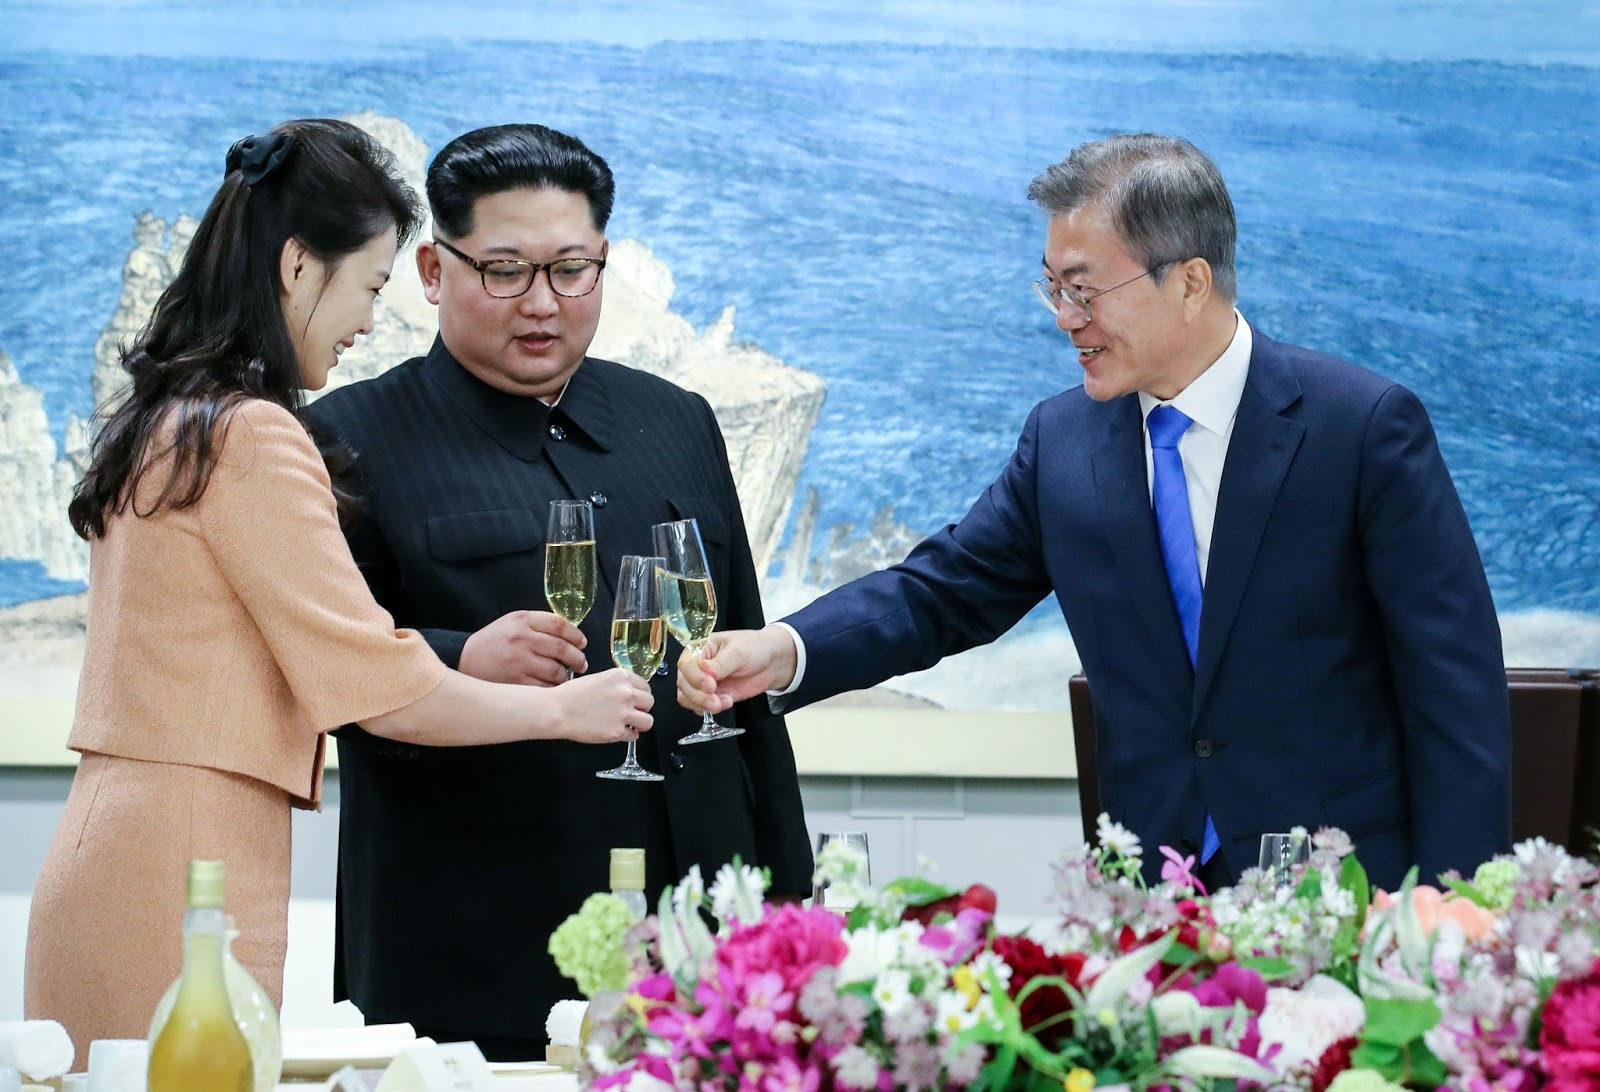 Kim, his wife Ri Sol-ju and Moon toast their glasses at the banquet.